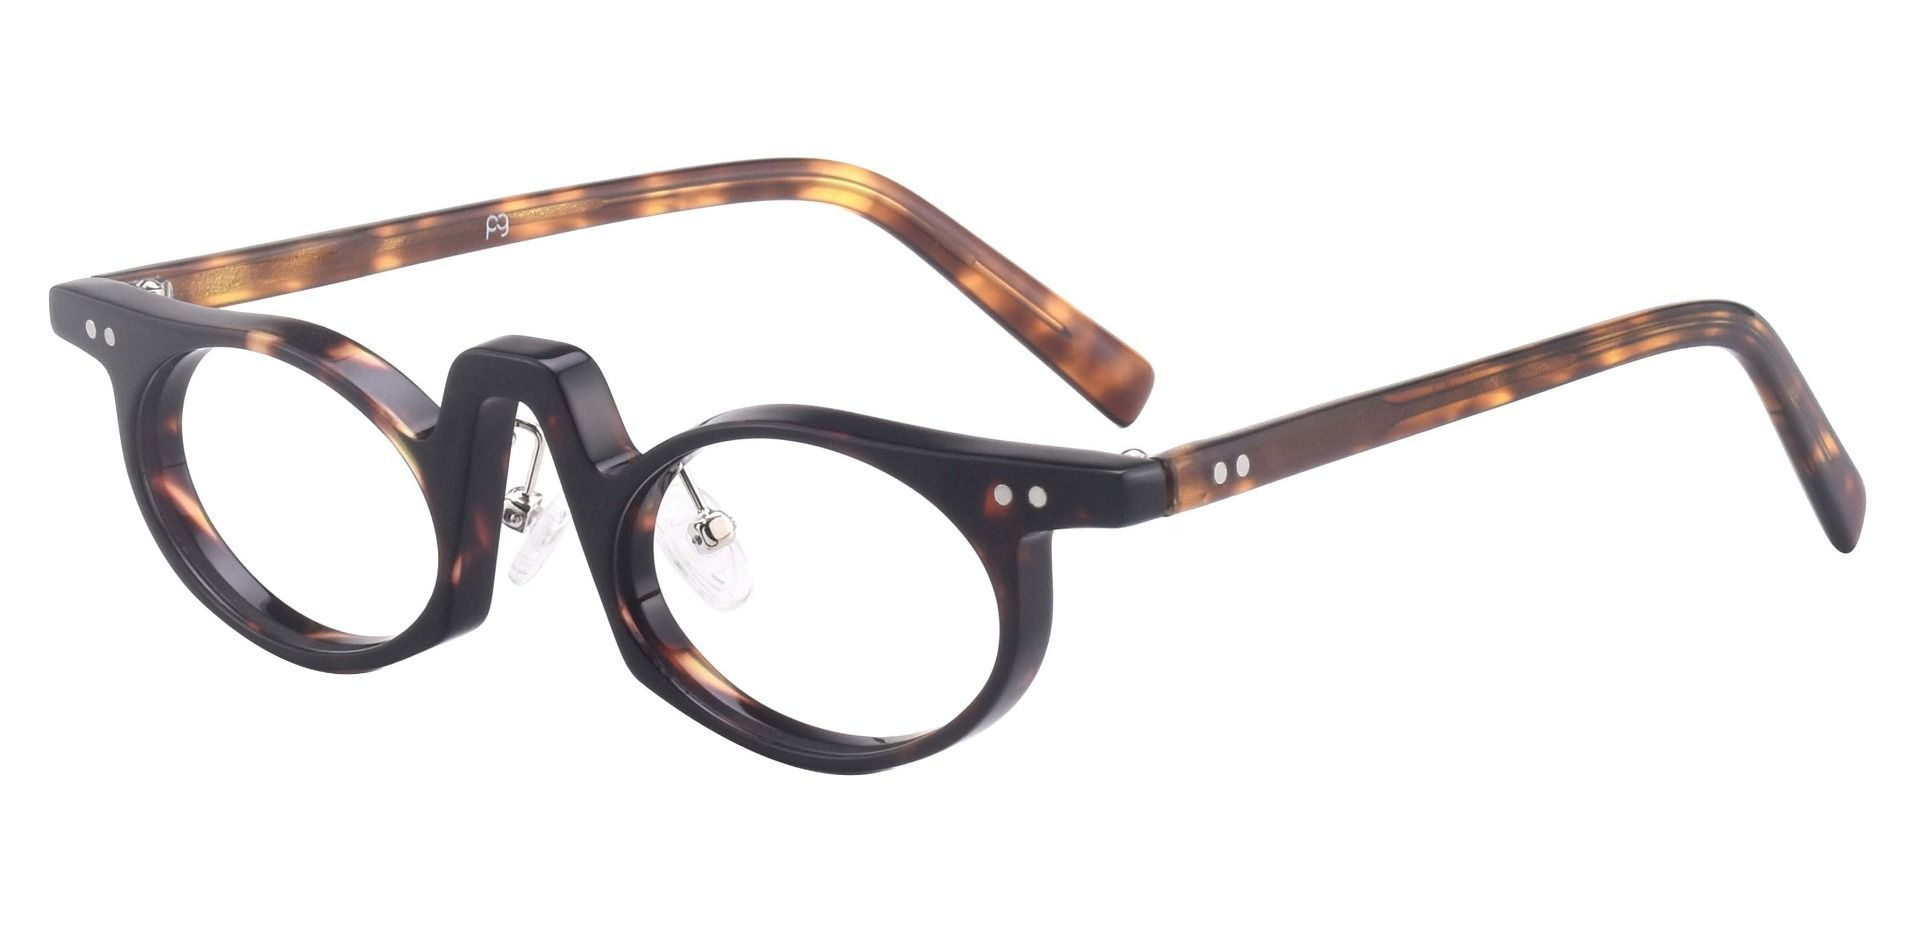 Hamlin Oval Single Vision Glasses - Tortoise